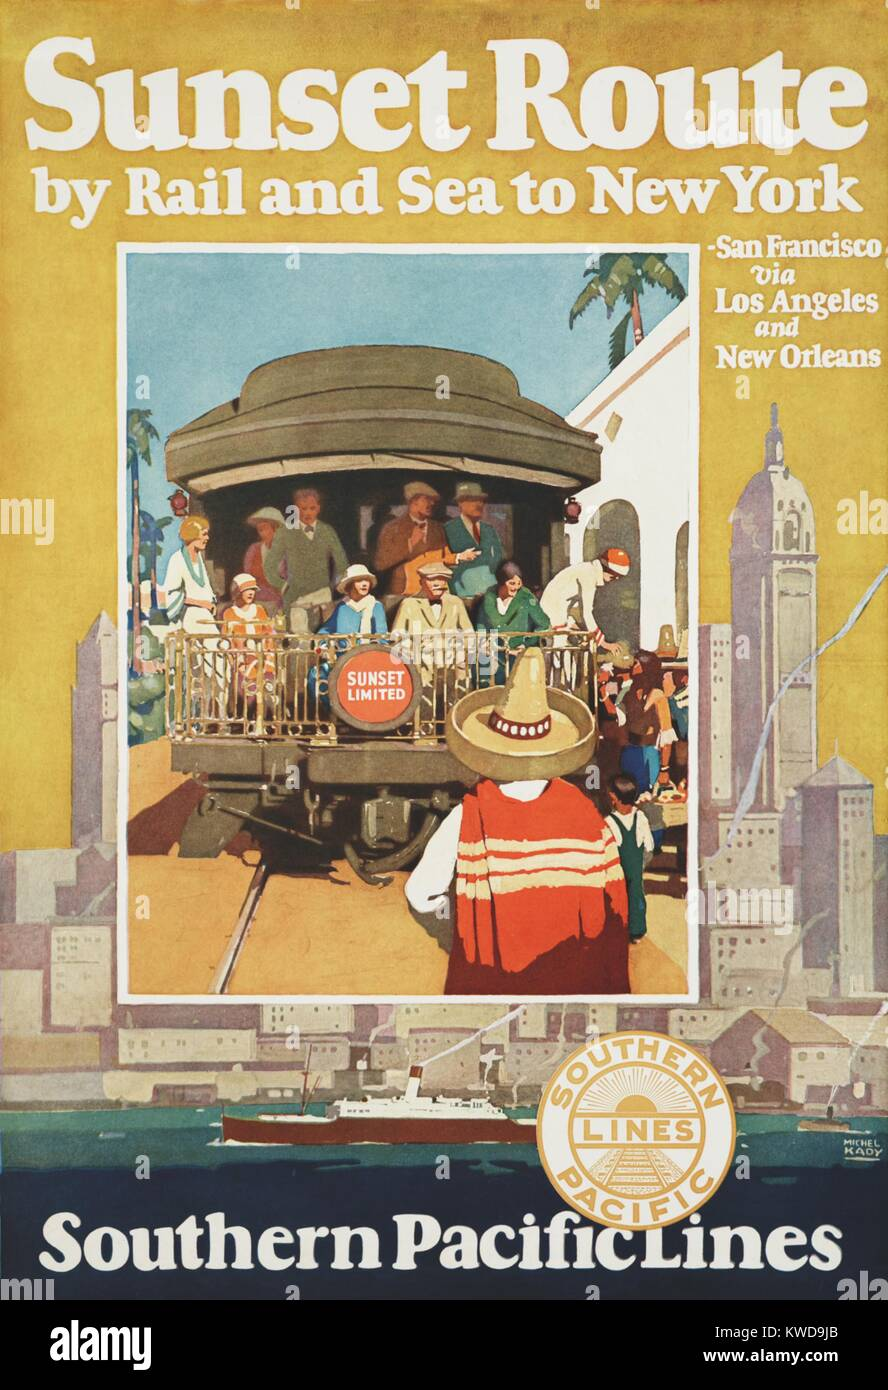 Southern Pacific Lines poster for their Sunset Route by rail and sea to New York, 1930 (BSLOC_2016_10_198) - Stock Image